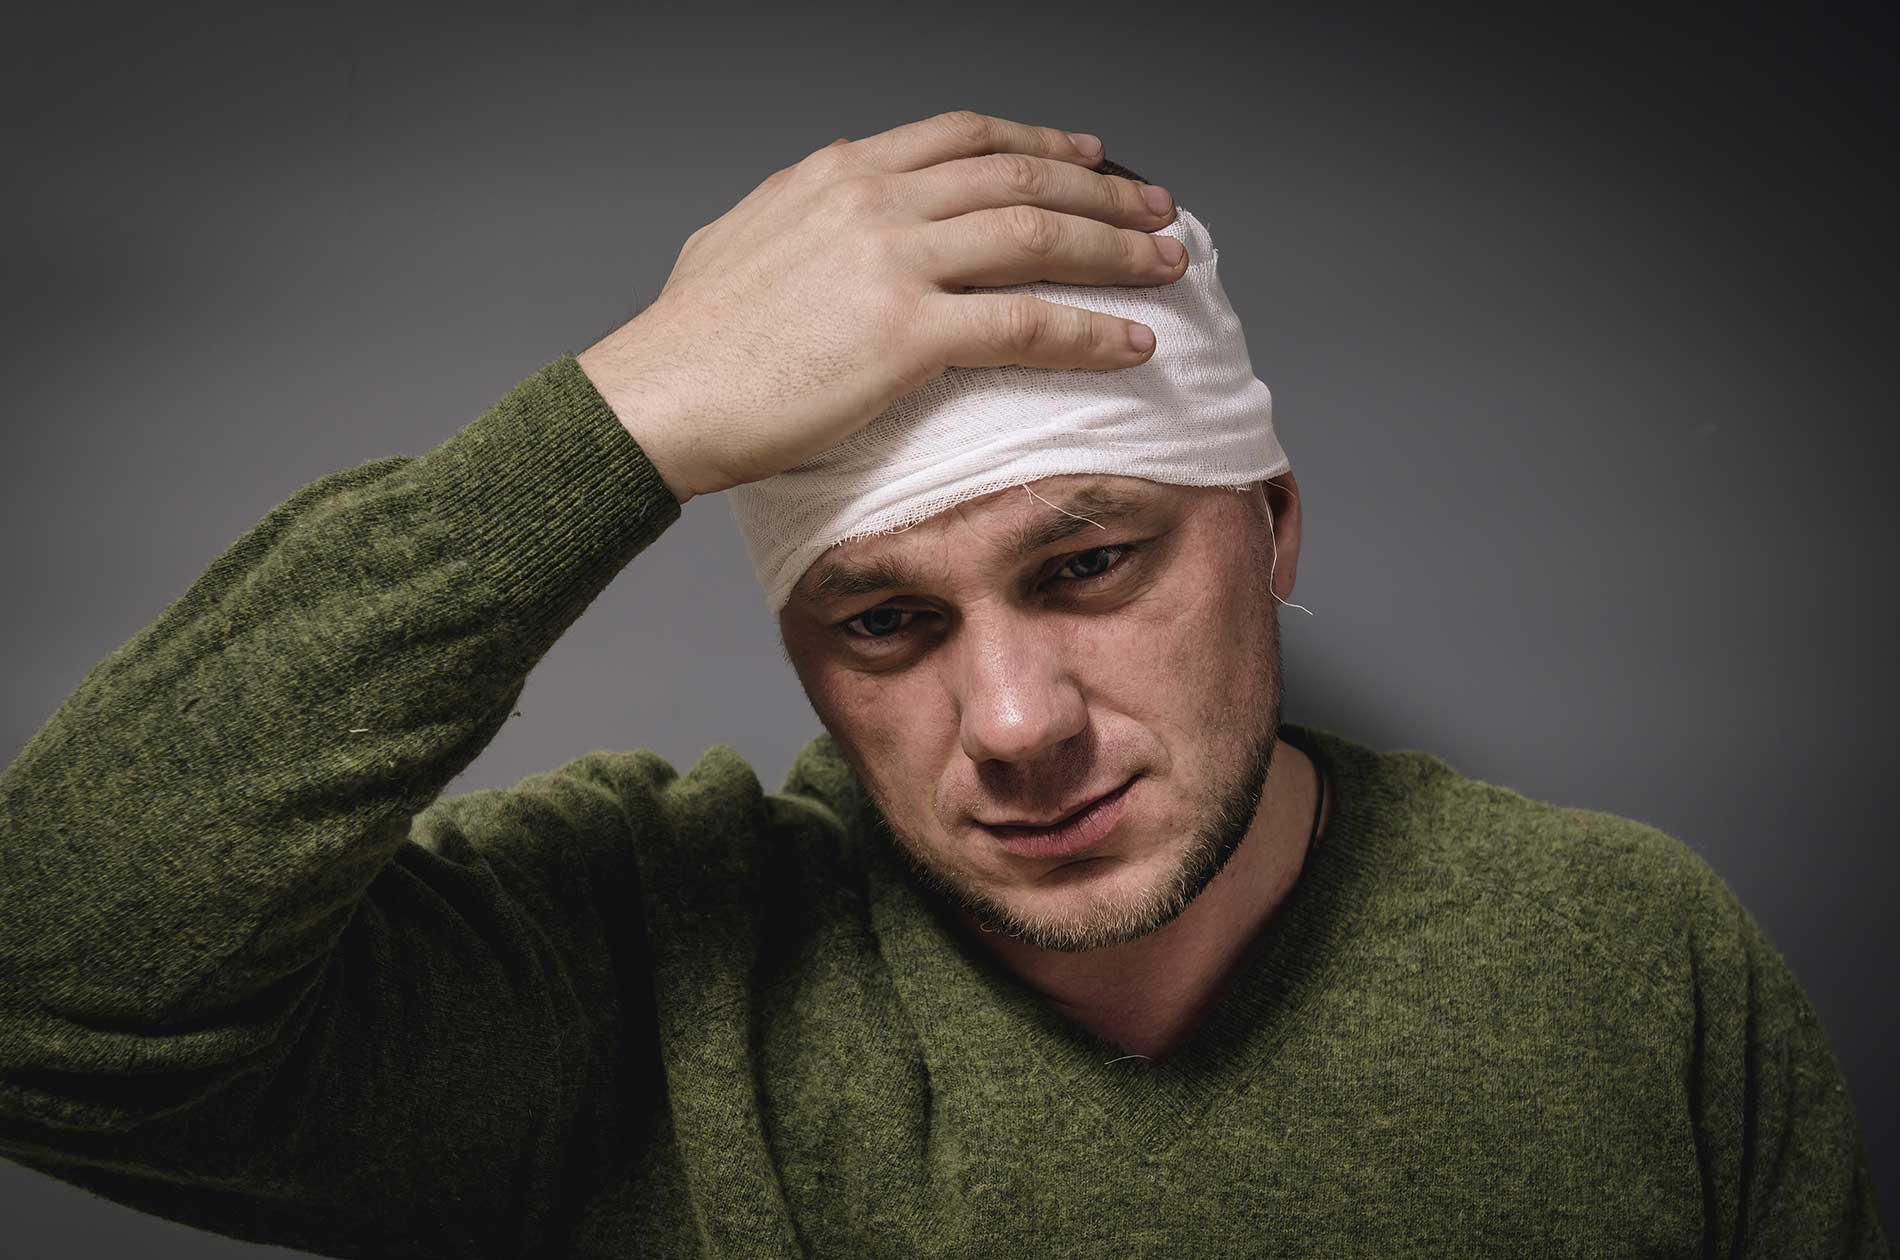 A patient with a bandage on his head.